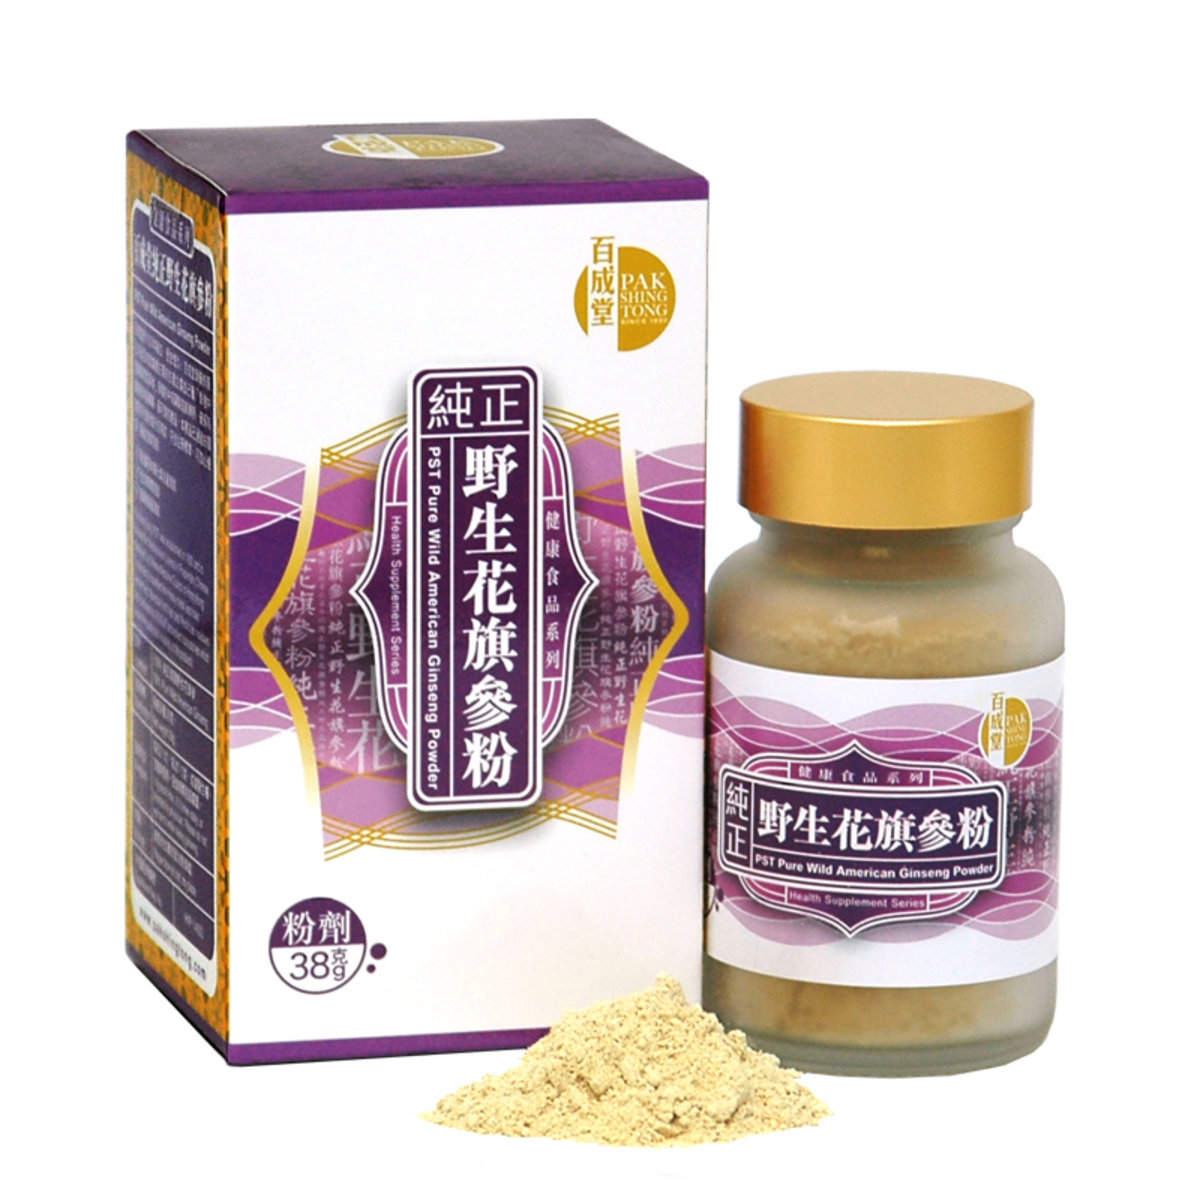 Pure American Ginseng Powder (38g)